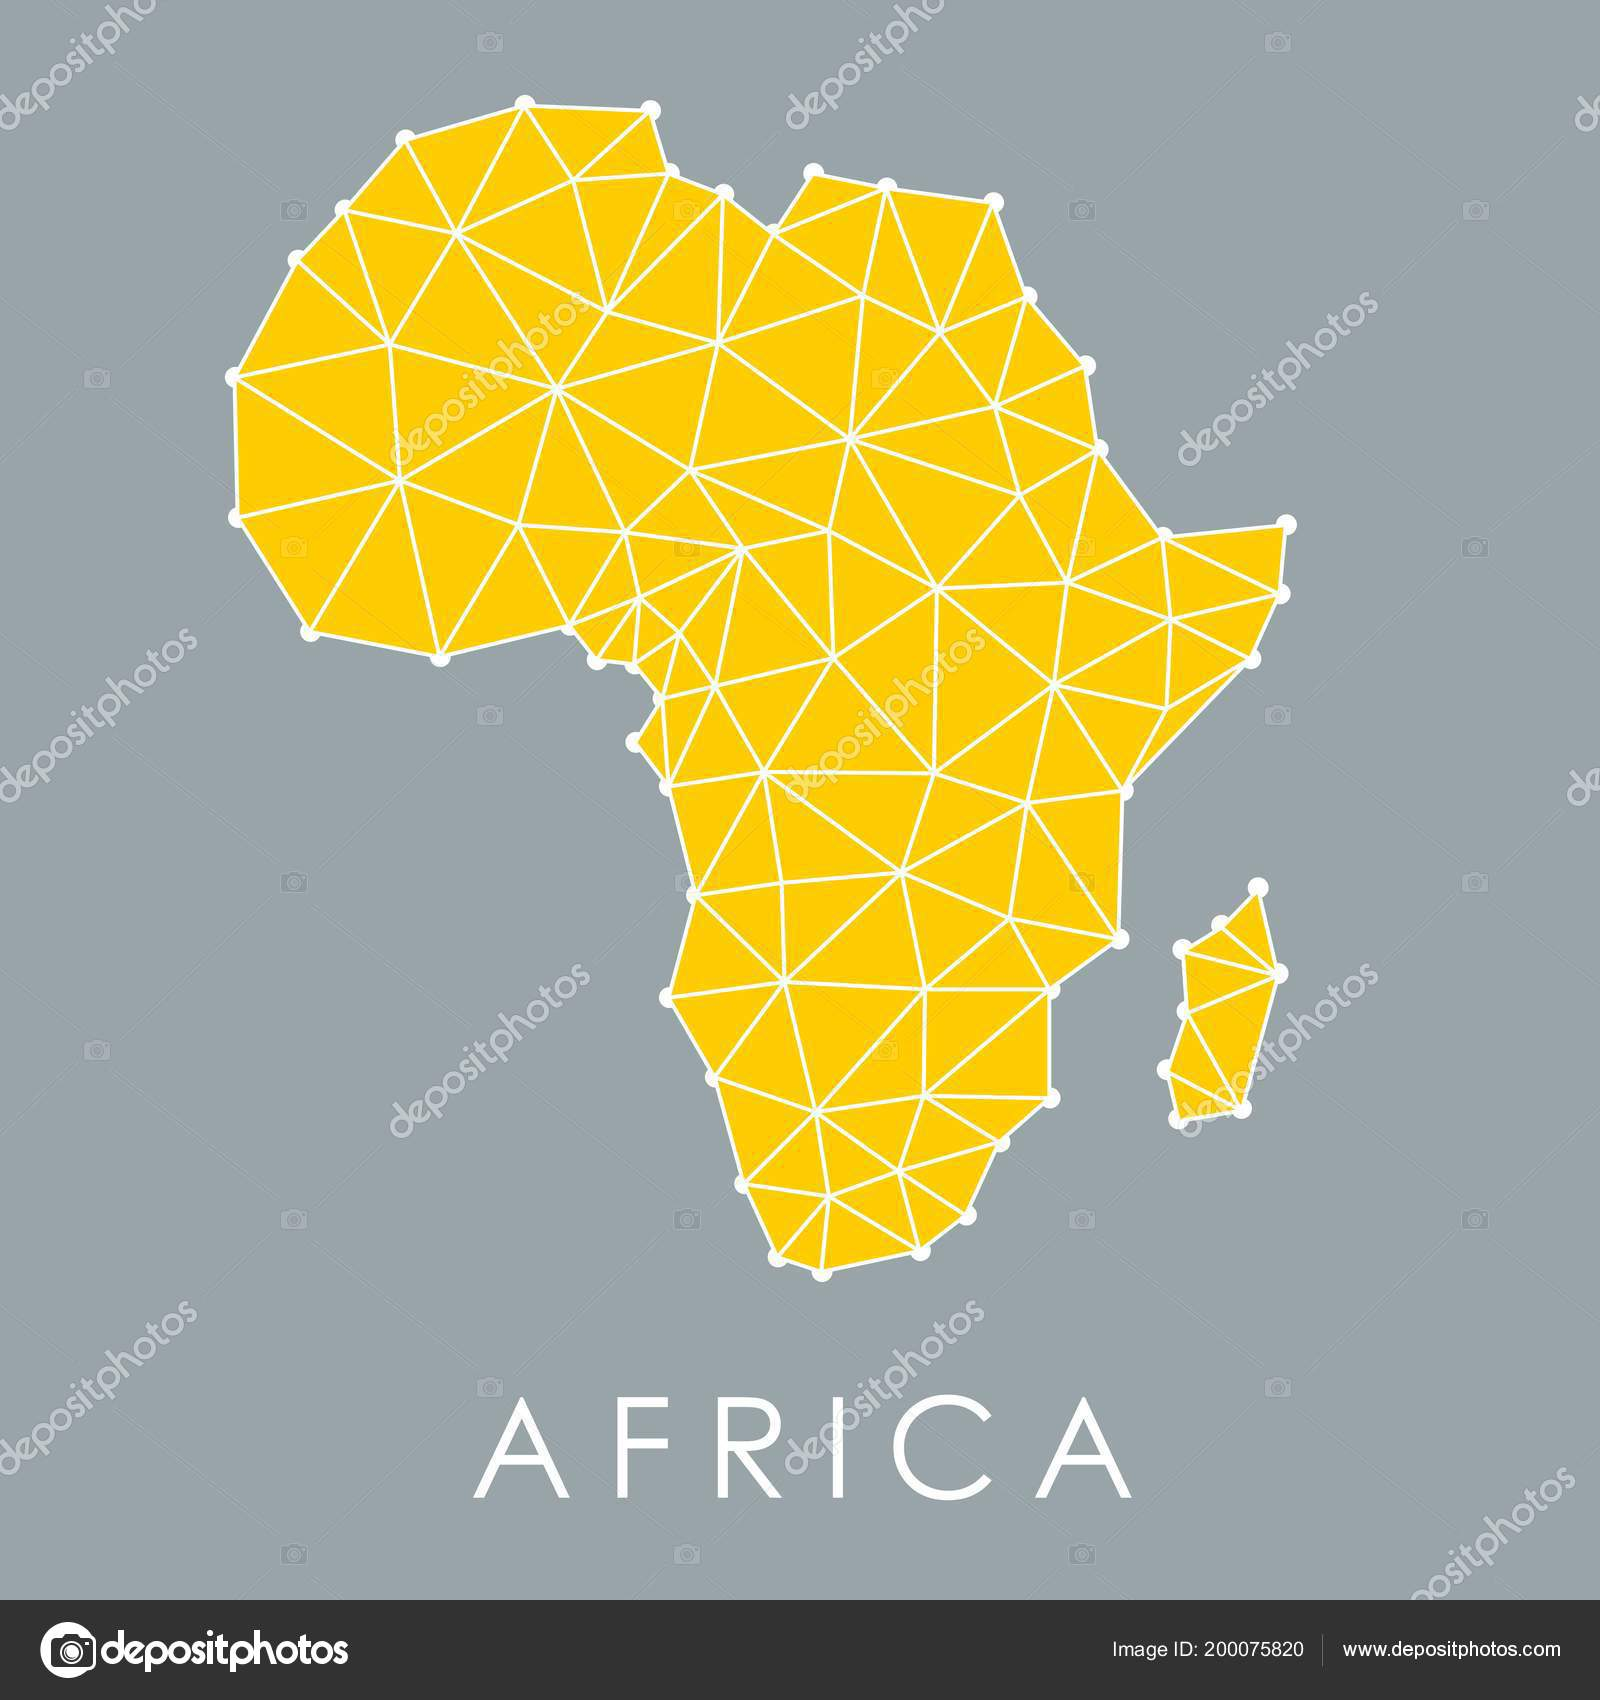 Africa Geometric Map Modern Style Low Poly Triangles Vector ...